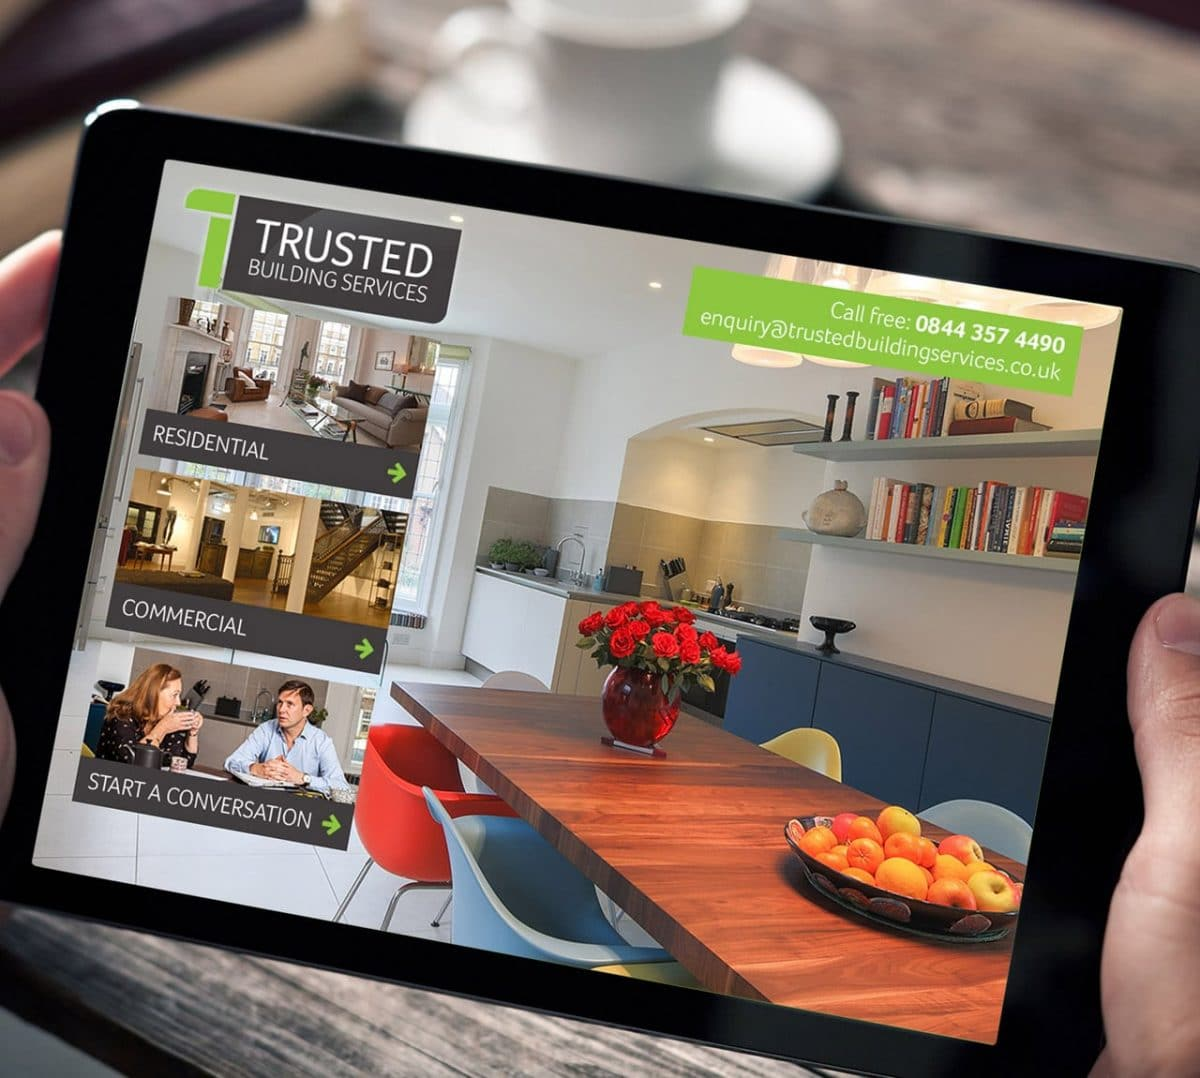 Trusted Building Services Website Tablet View